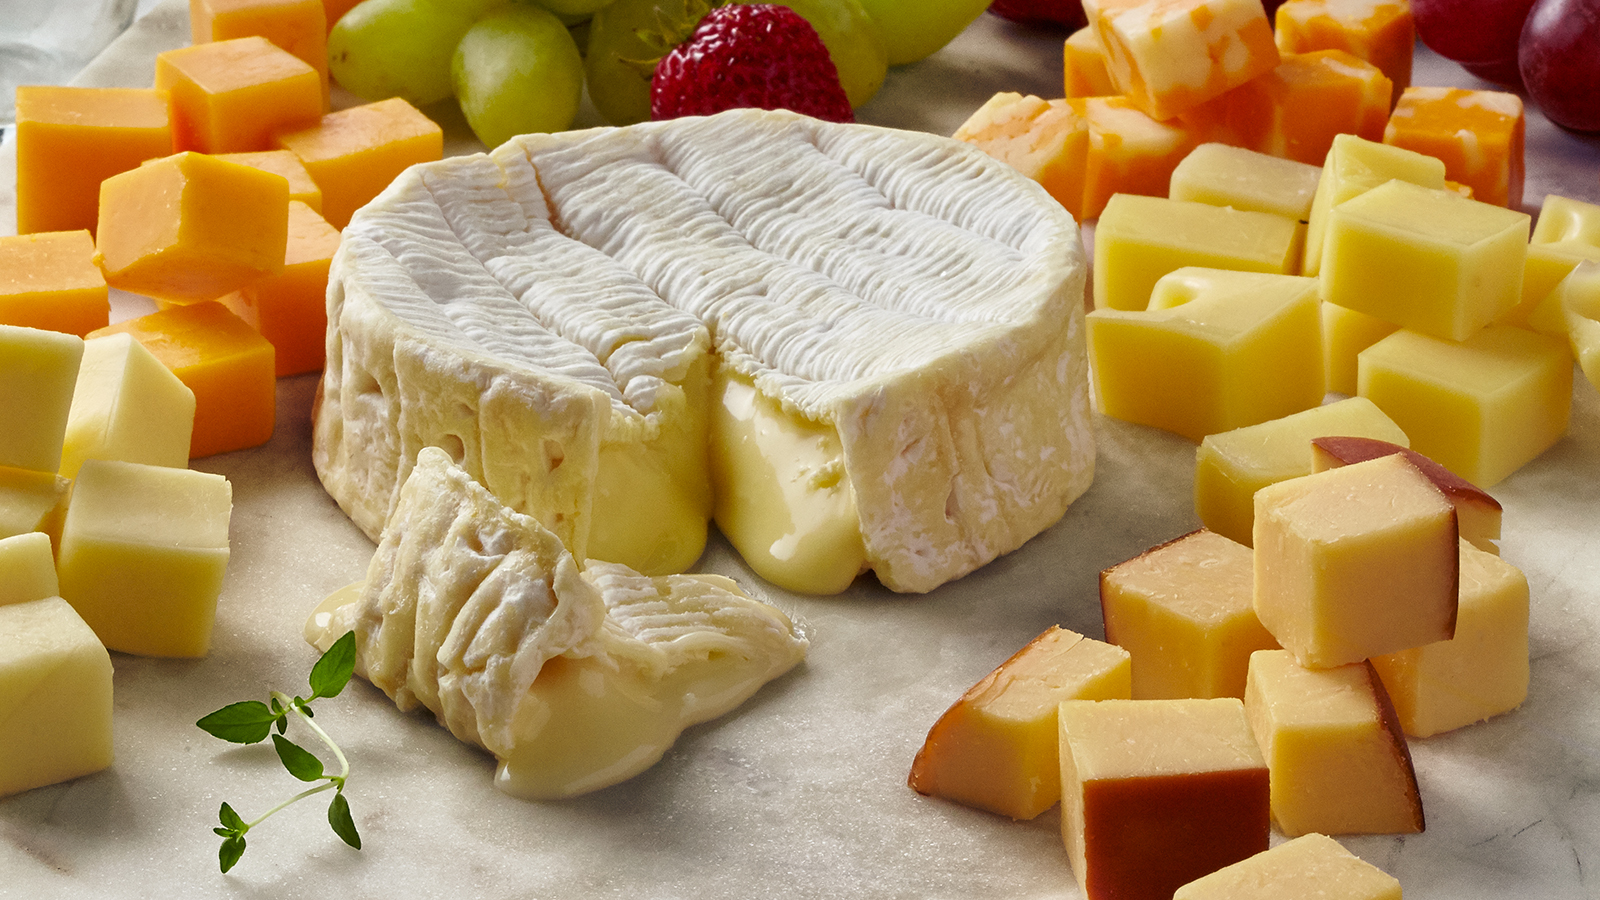 Classic Fruit & Cheese